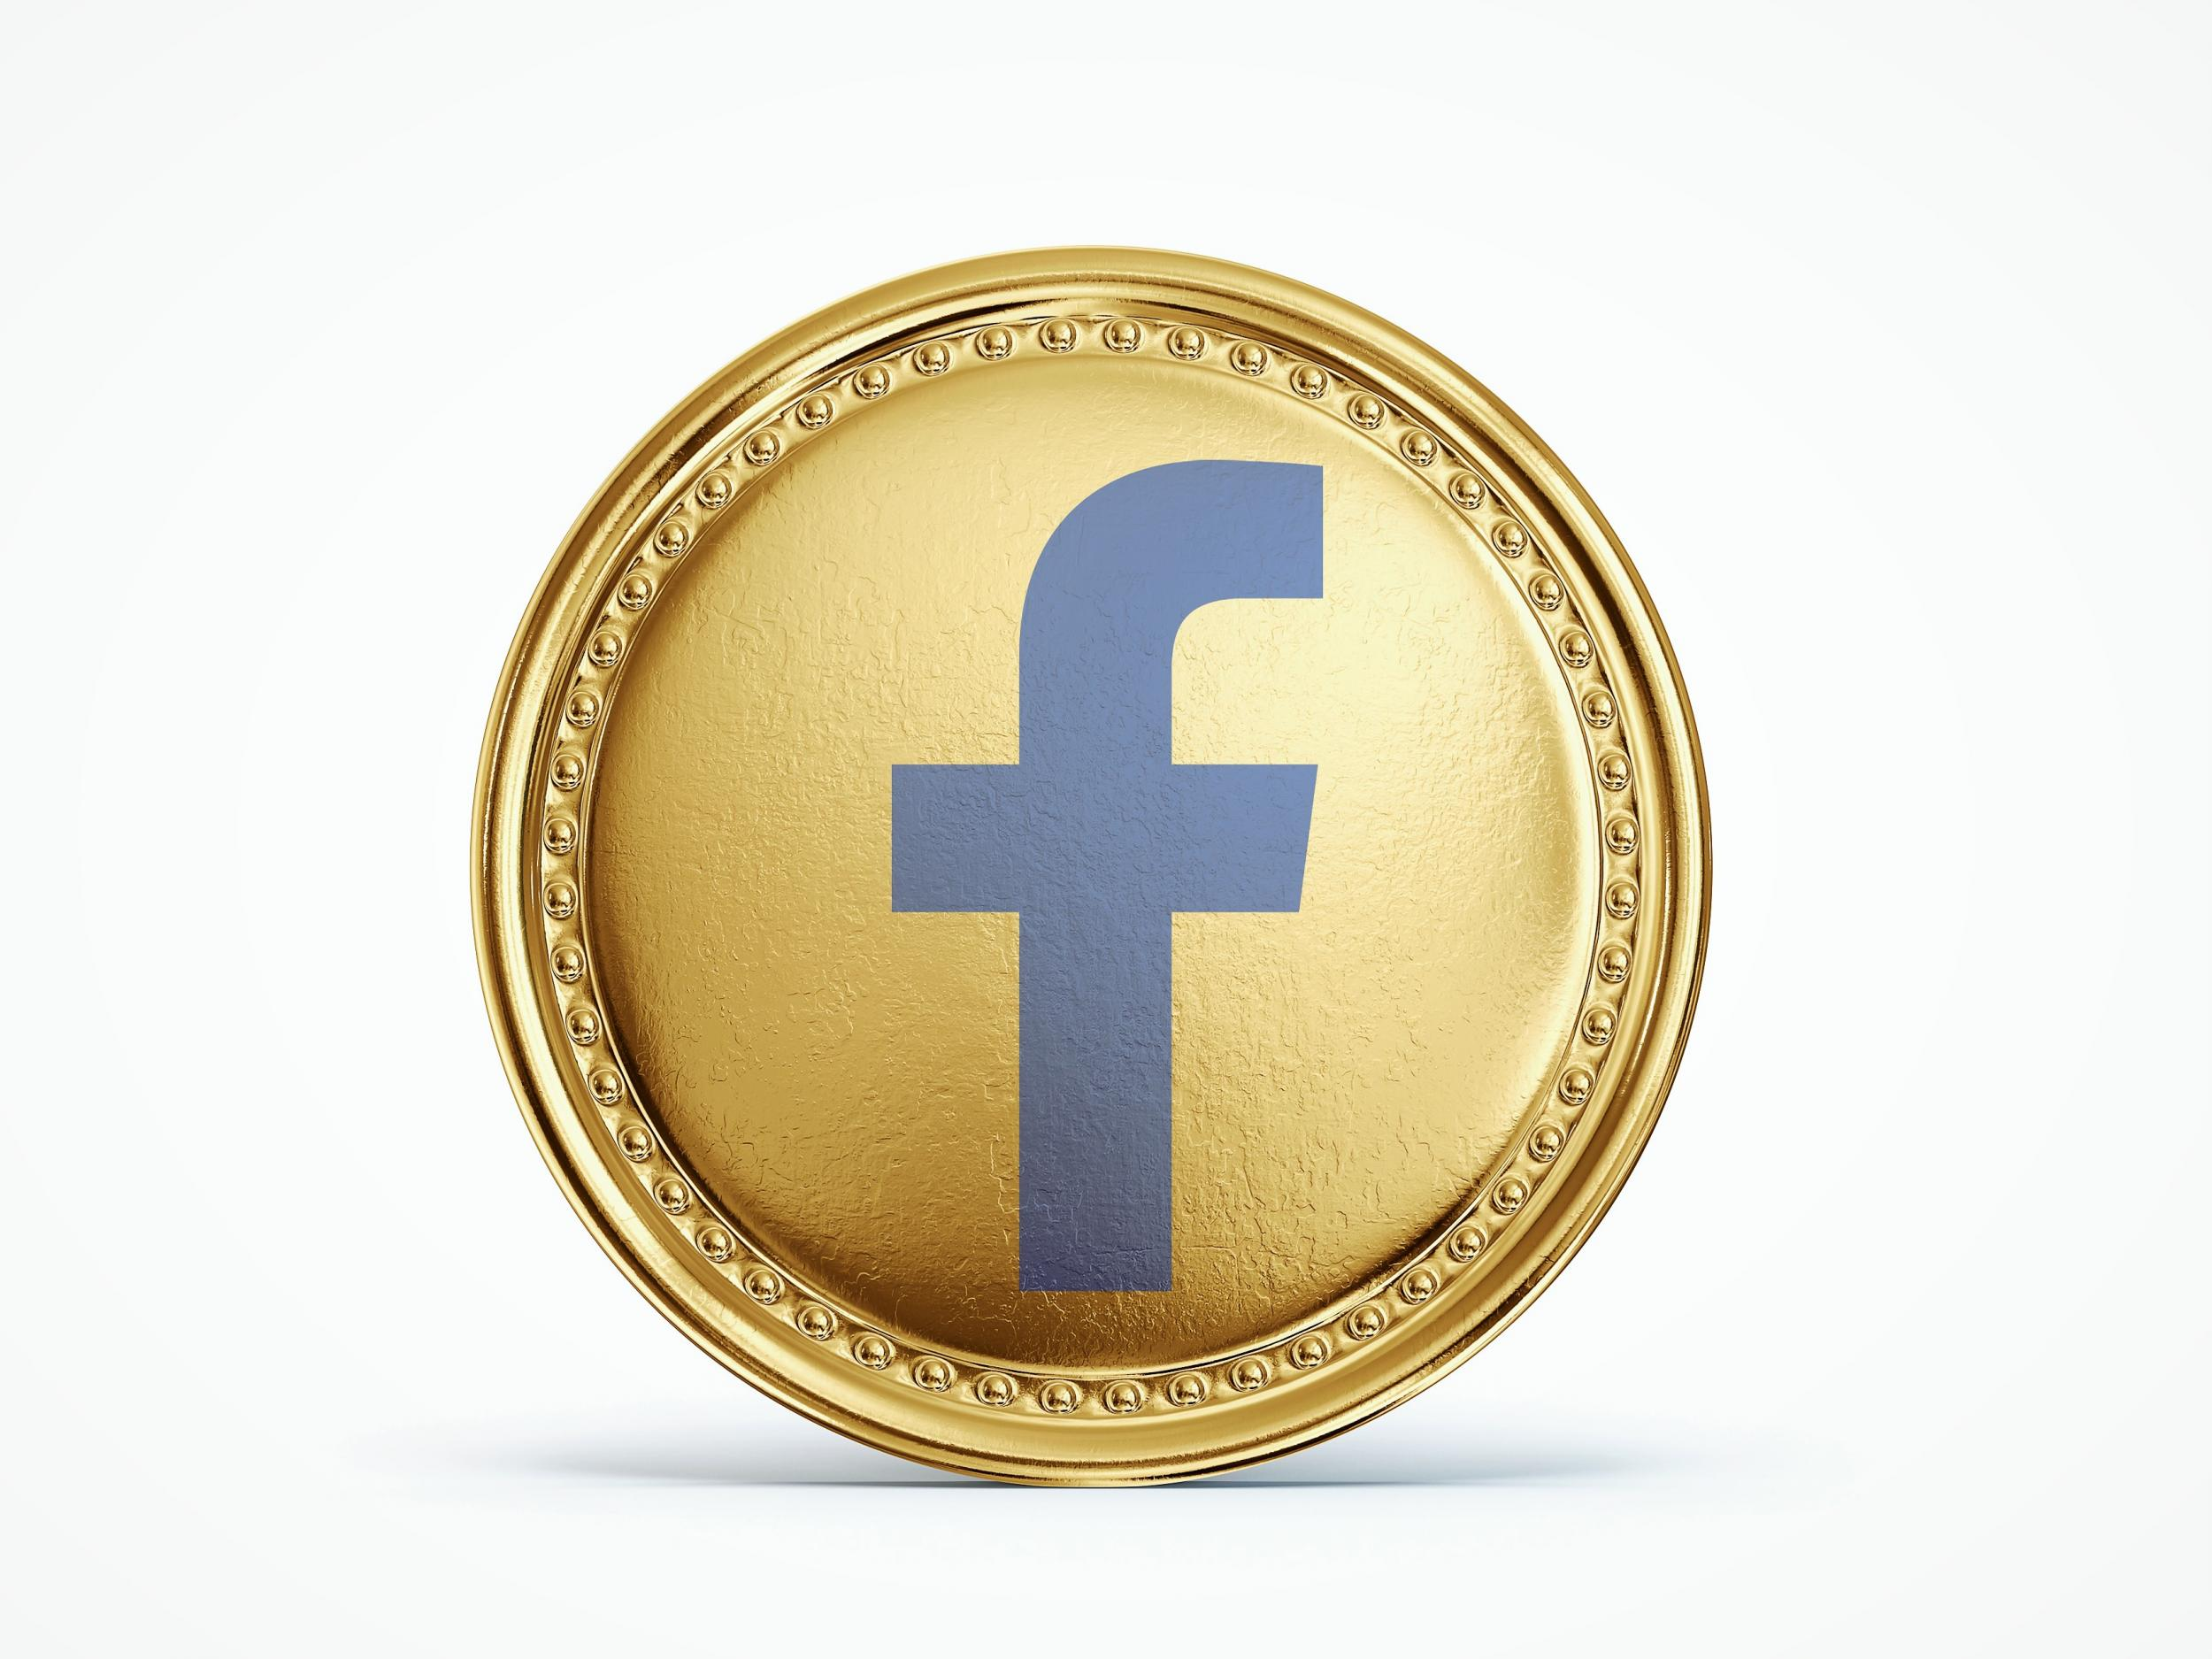 Facebook is Working on a Cryptocurrency for WhatsApp to Rival Bitcoin